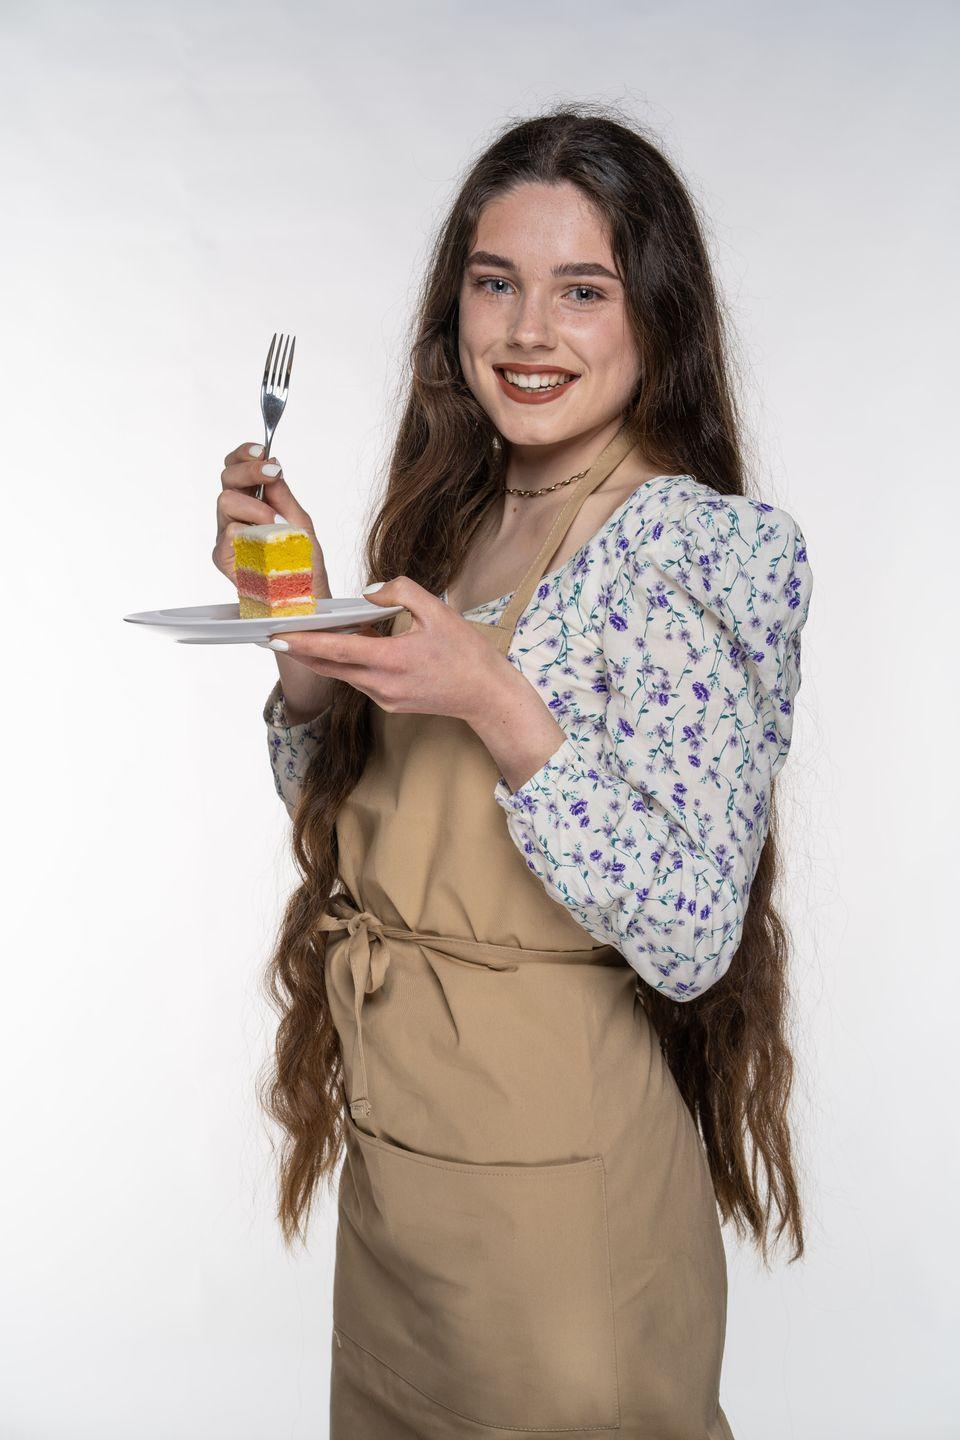 Great British Bake Off: Meet The 12 Contestants Being Put Through Their Paces This